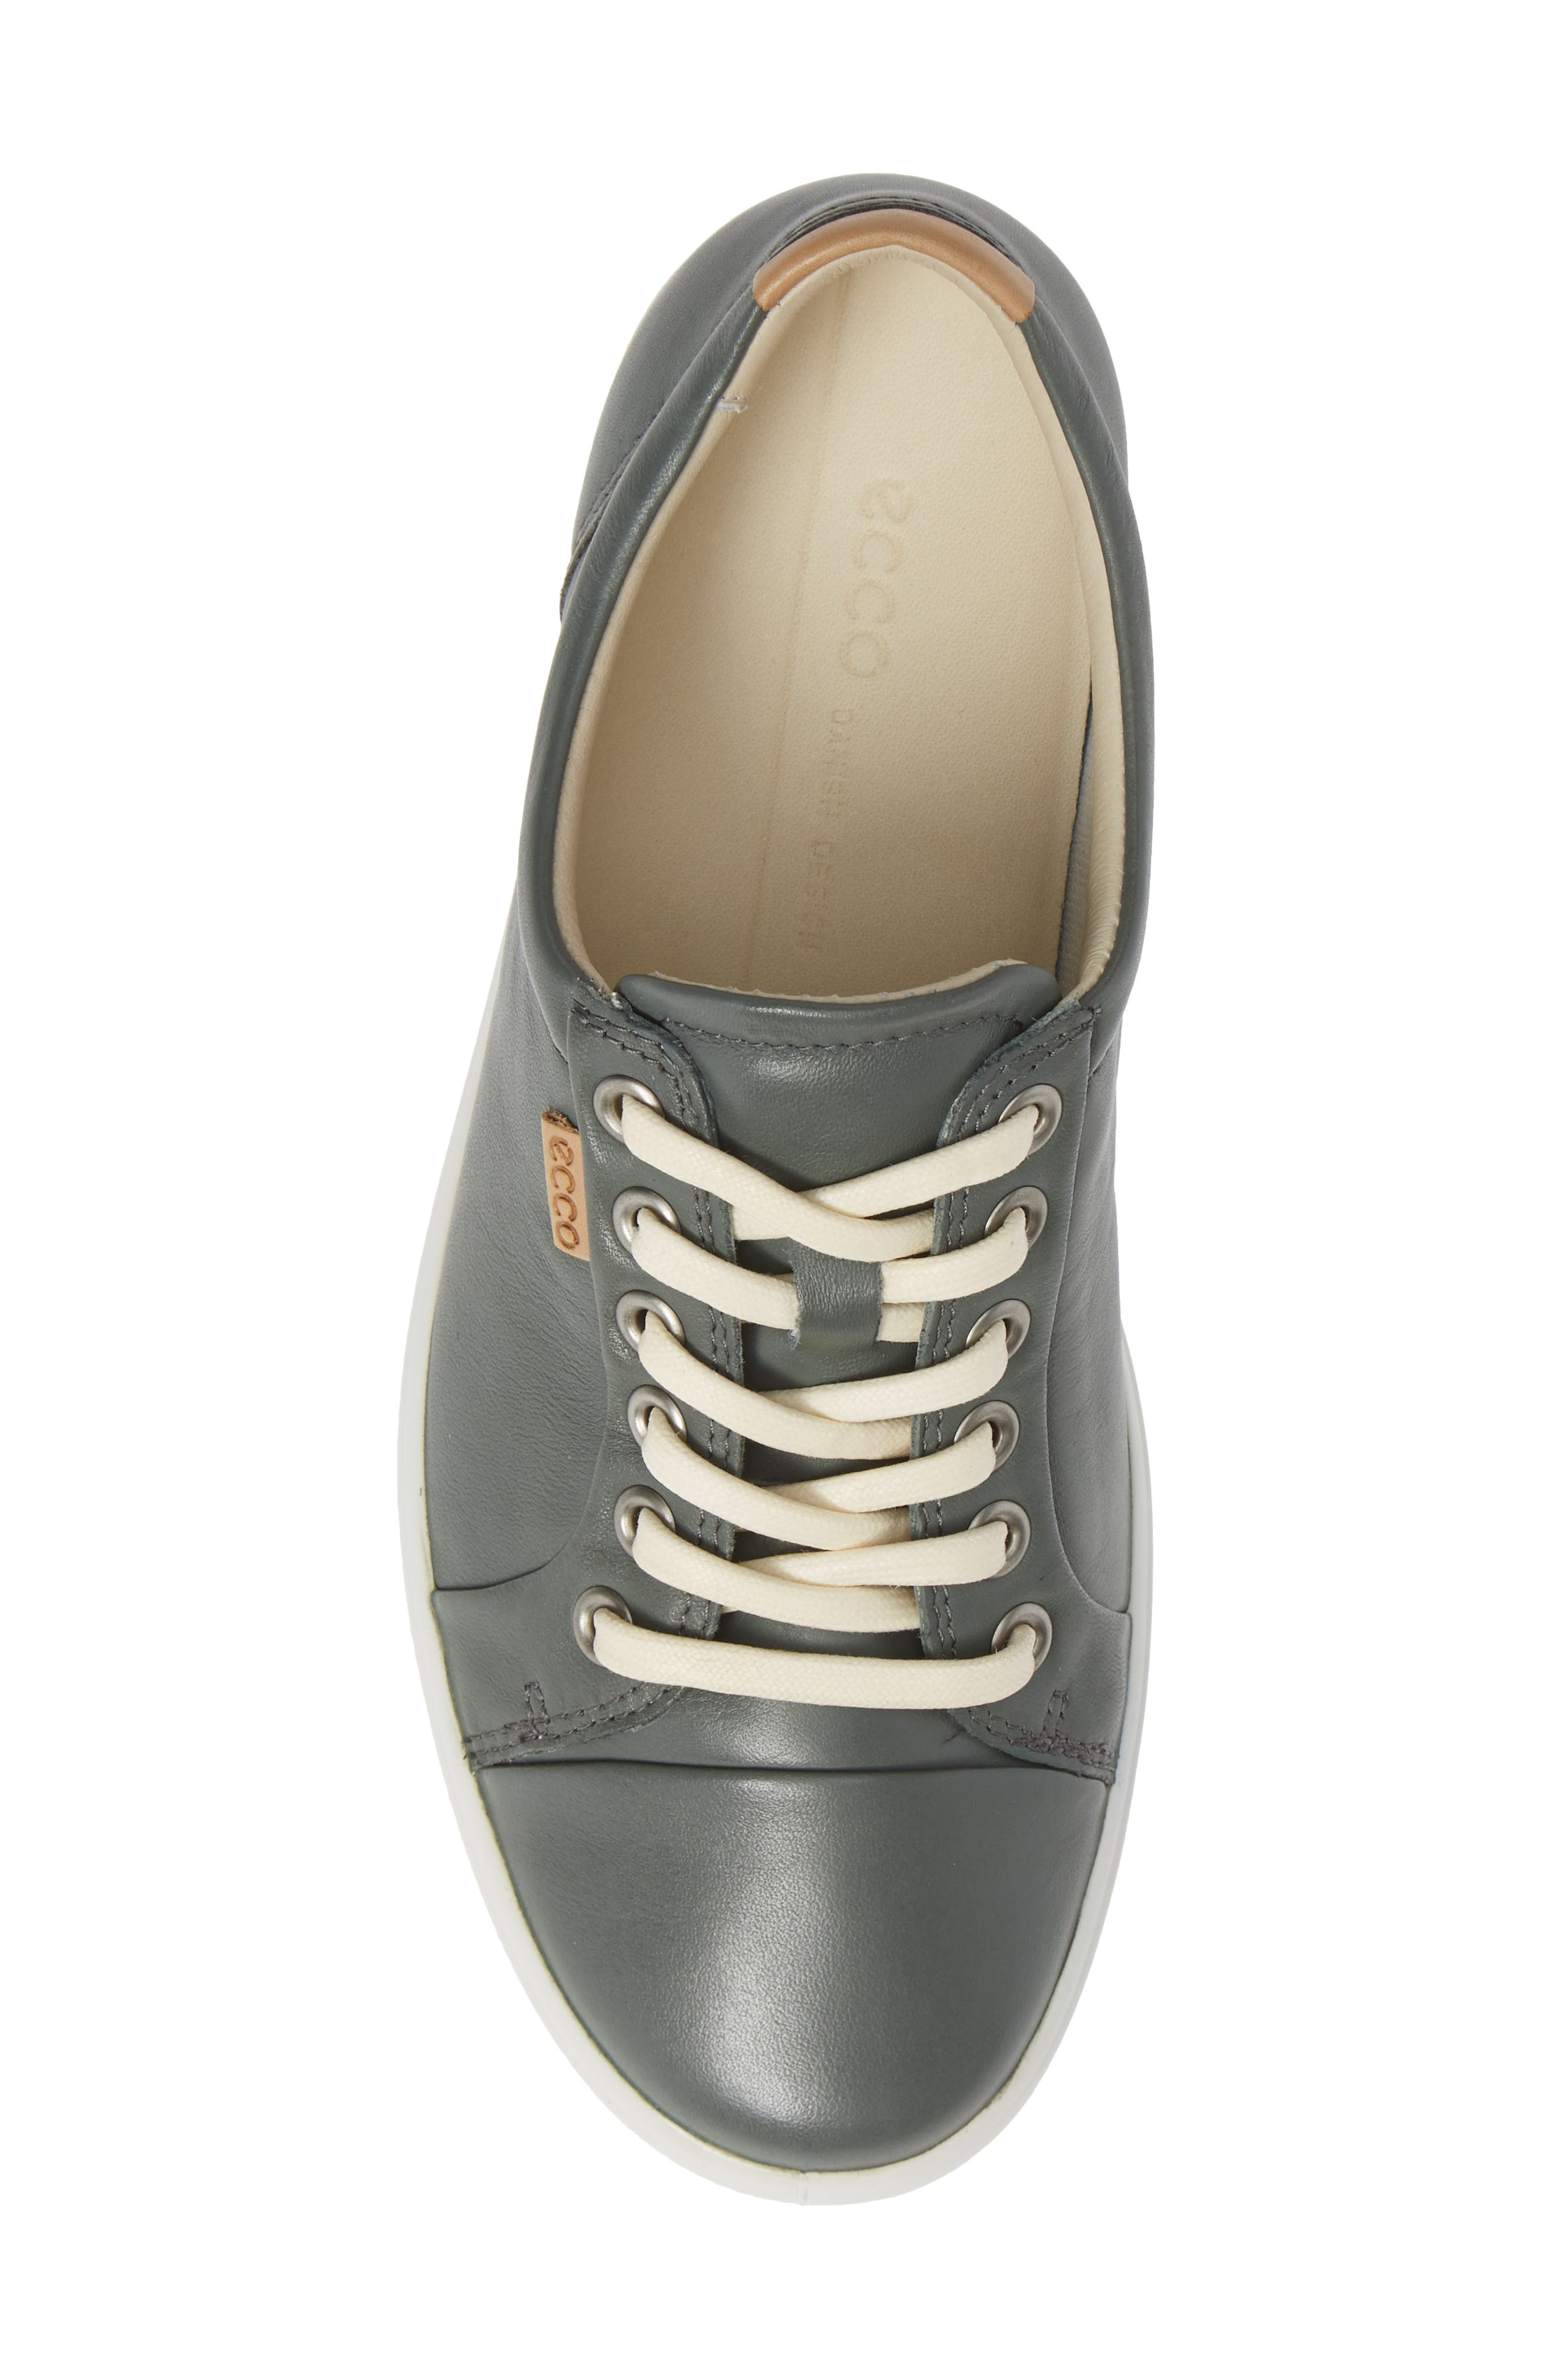 Soft 7 Sneaker,                             Alternate thumbnail 5, color,                             MOON LEATHER